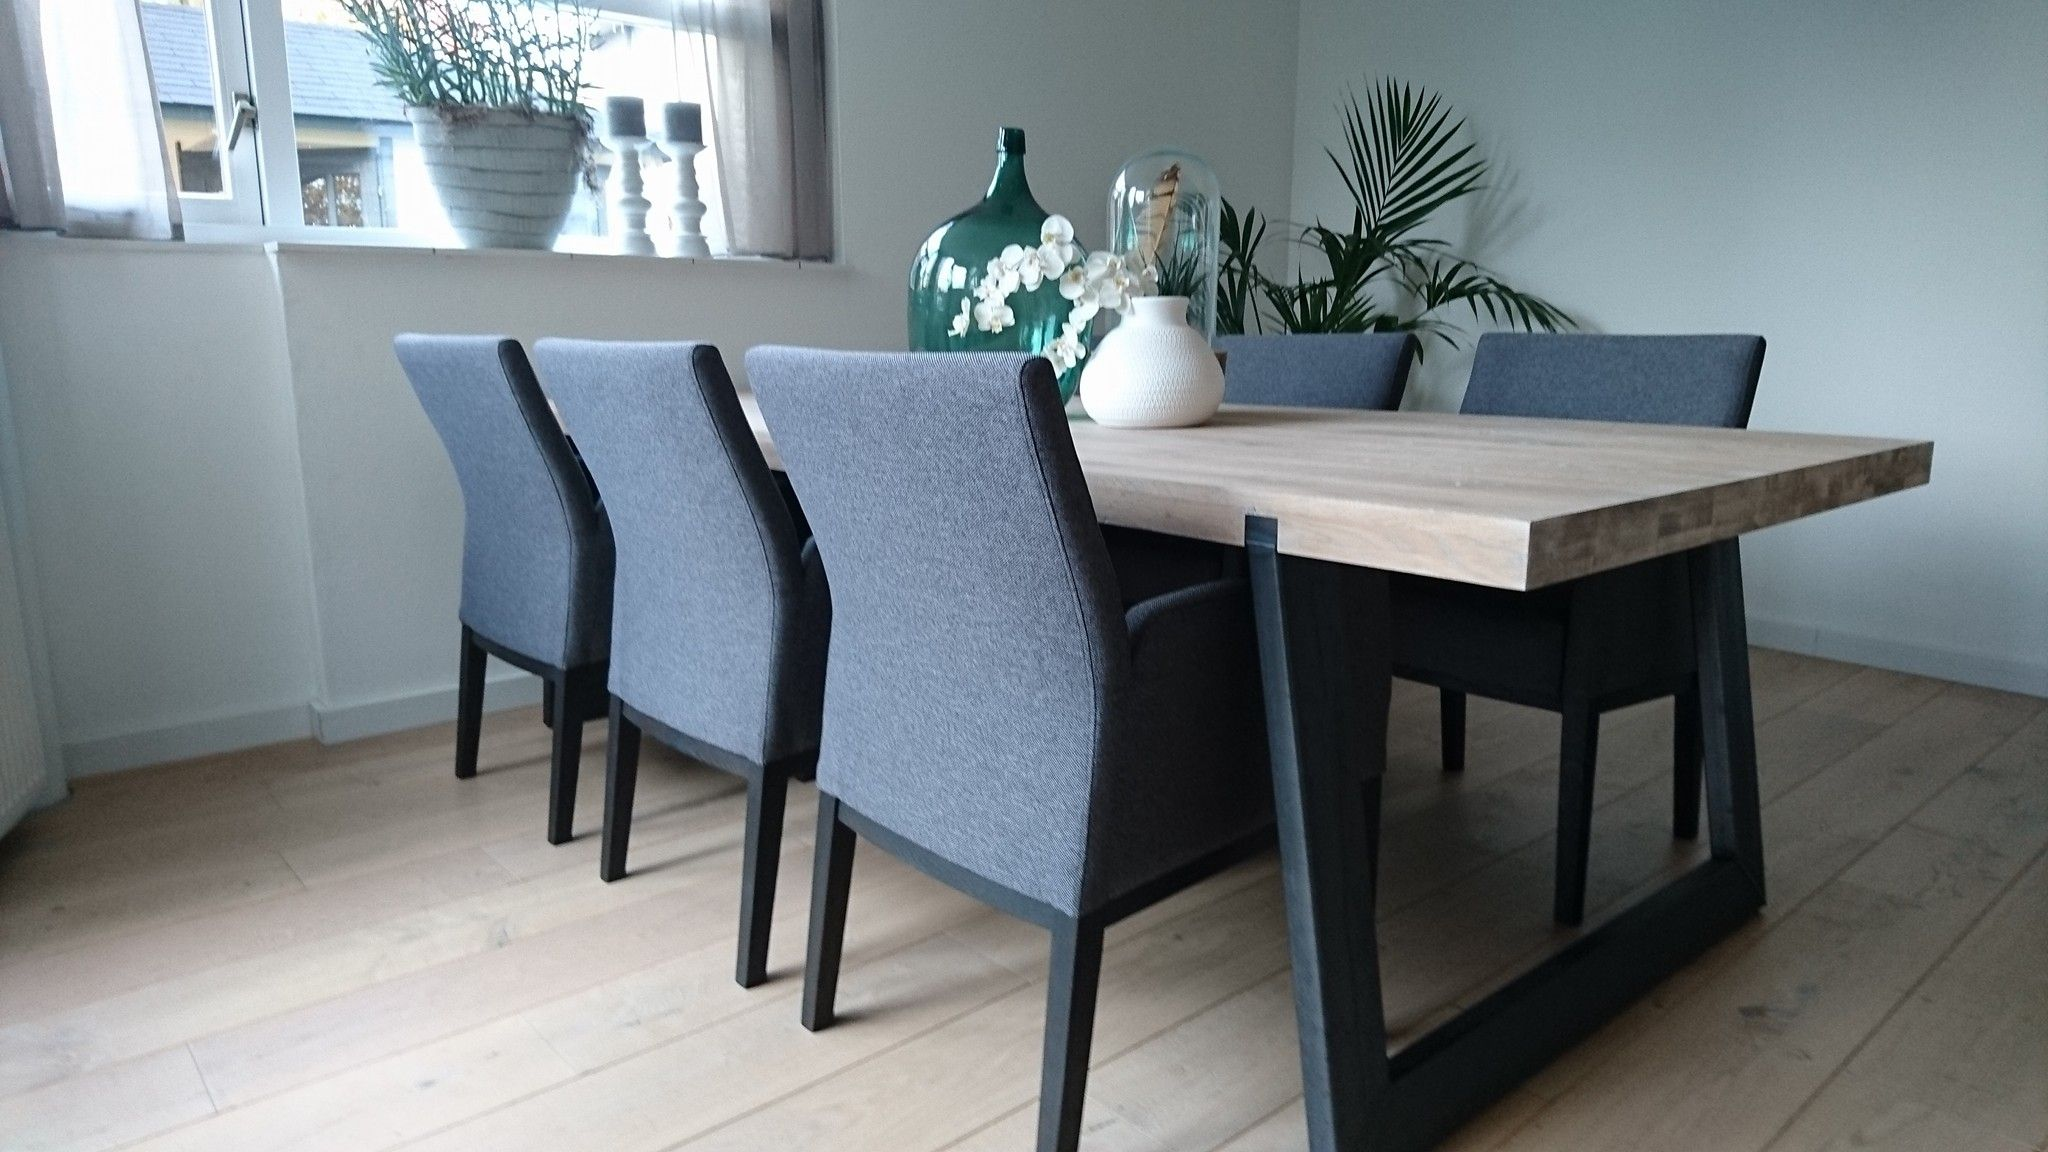 Woon by flow design interieuradvies eetkamer eettafel